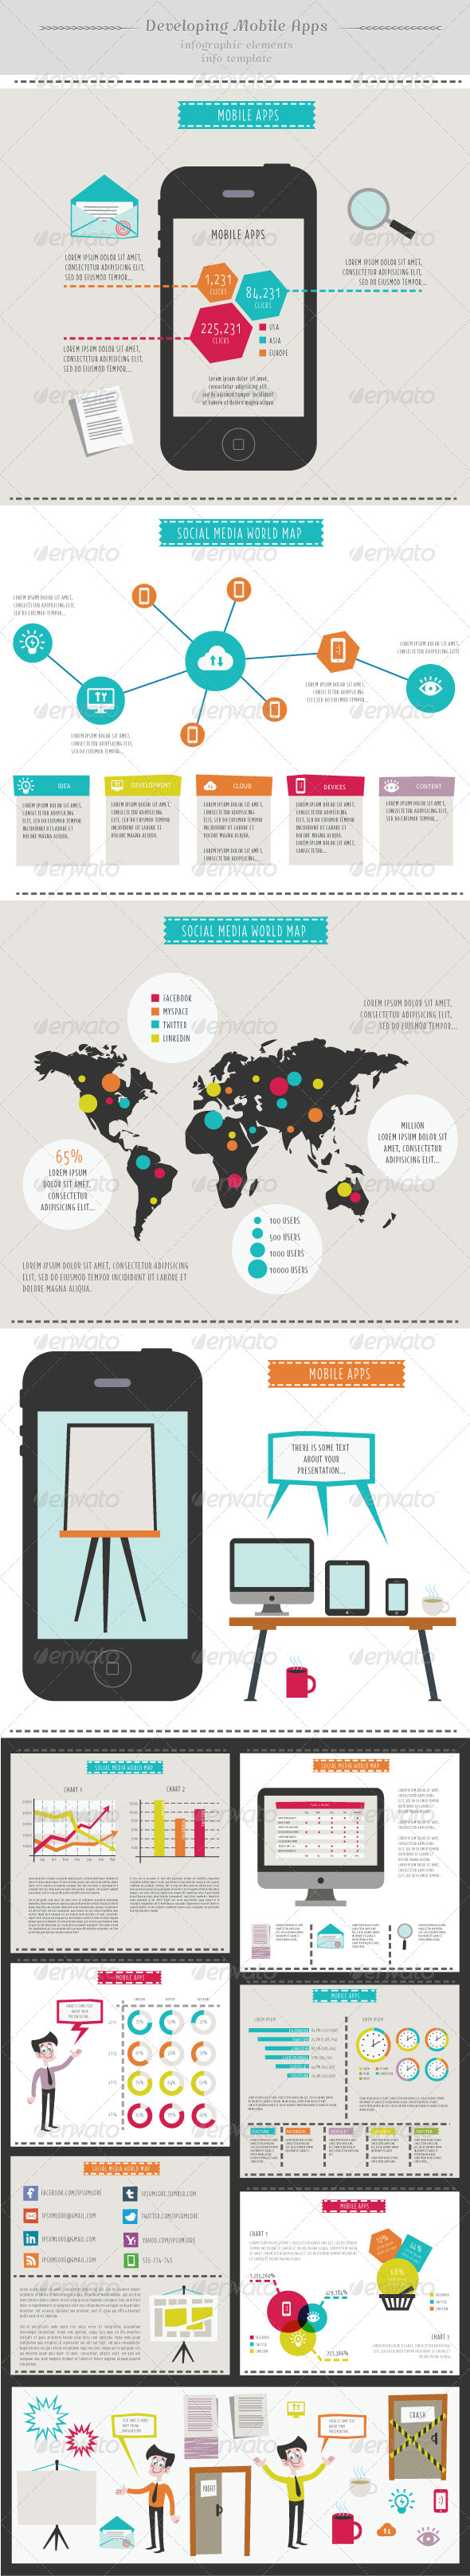 Developing Mobile Apps Infographic Elements In